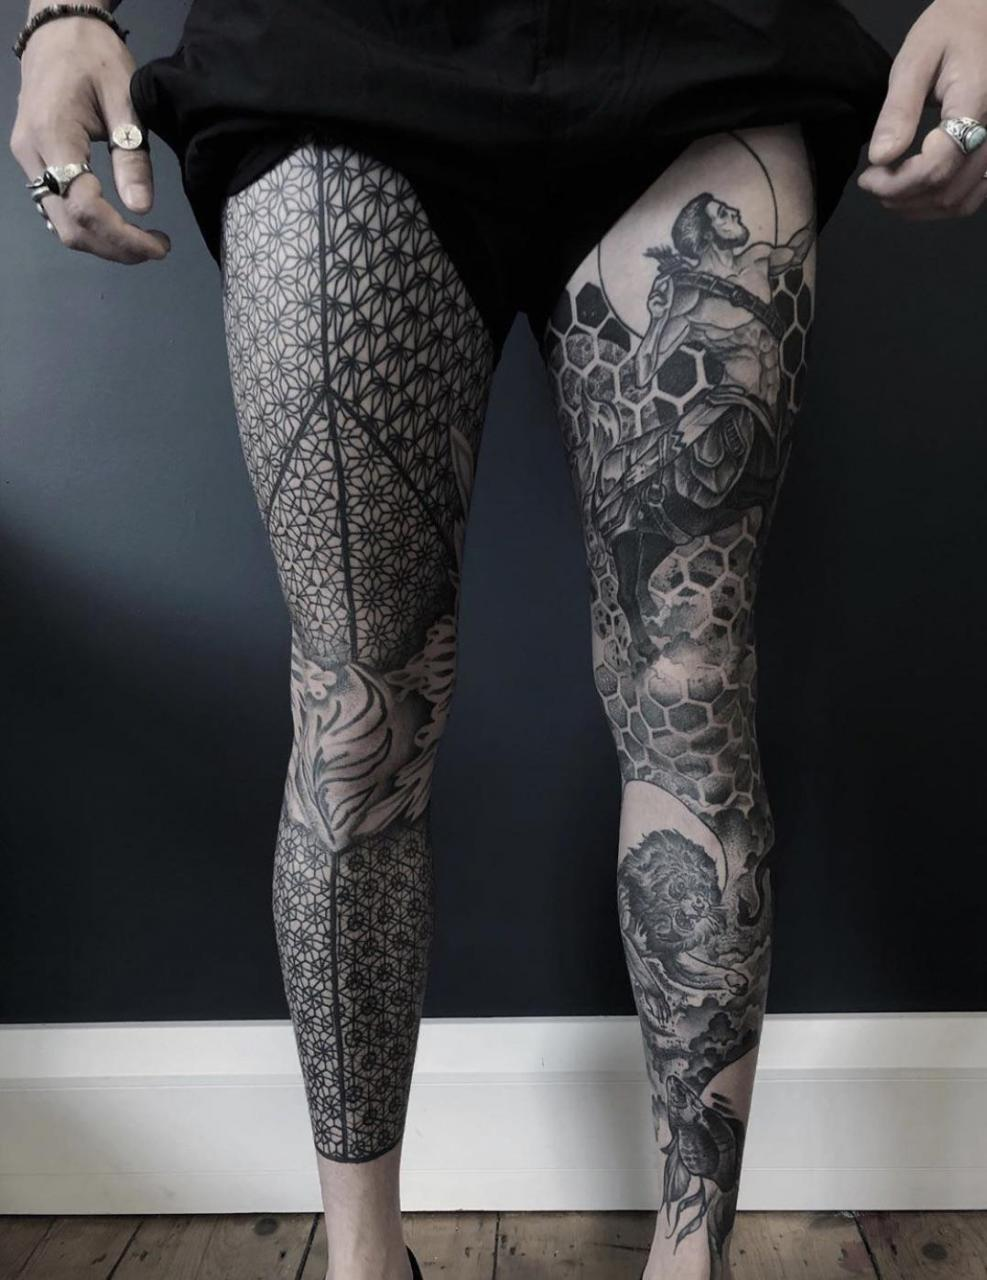 Both legs healed from 2 years ago, done at The Hidden Tannery in Brighton, UK.